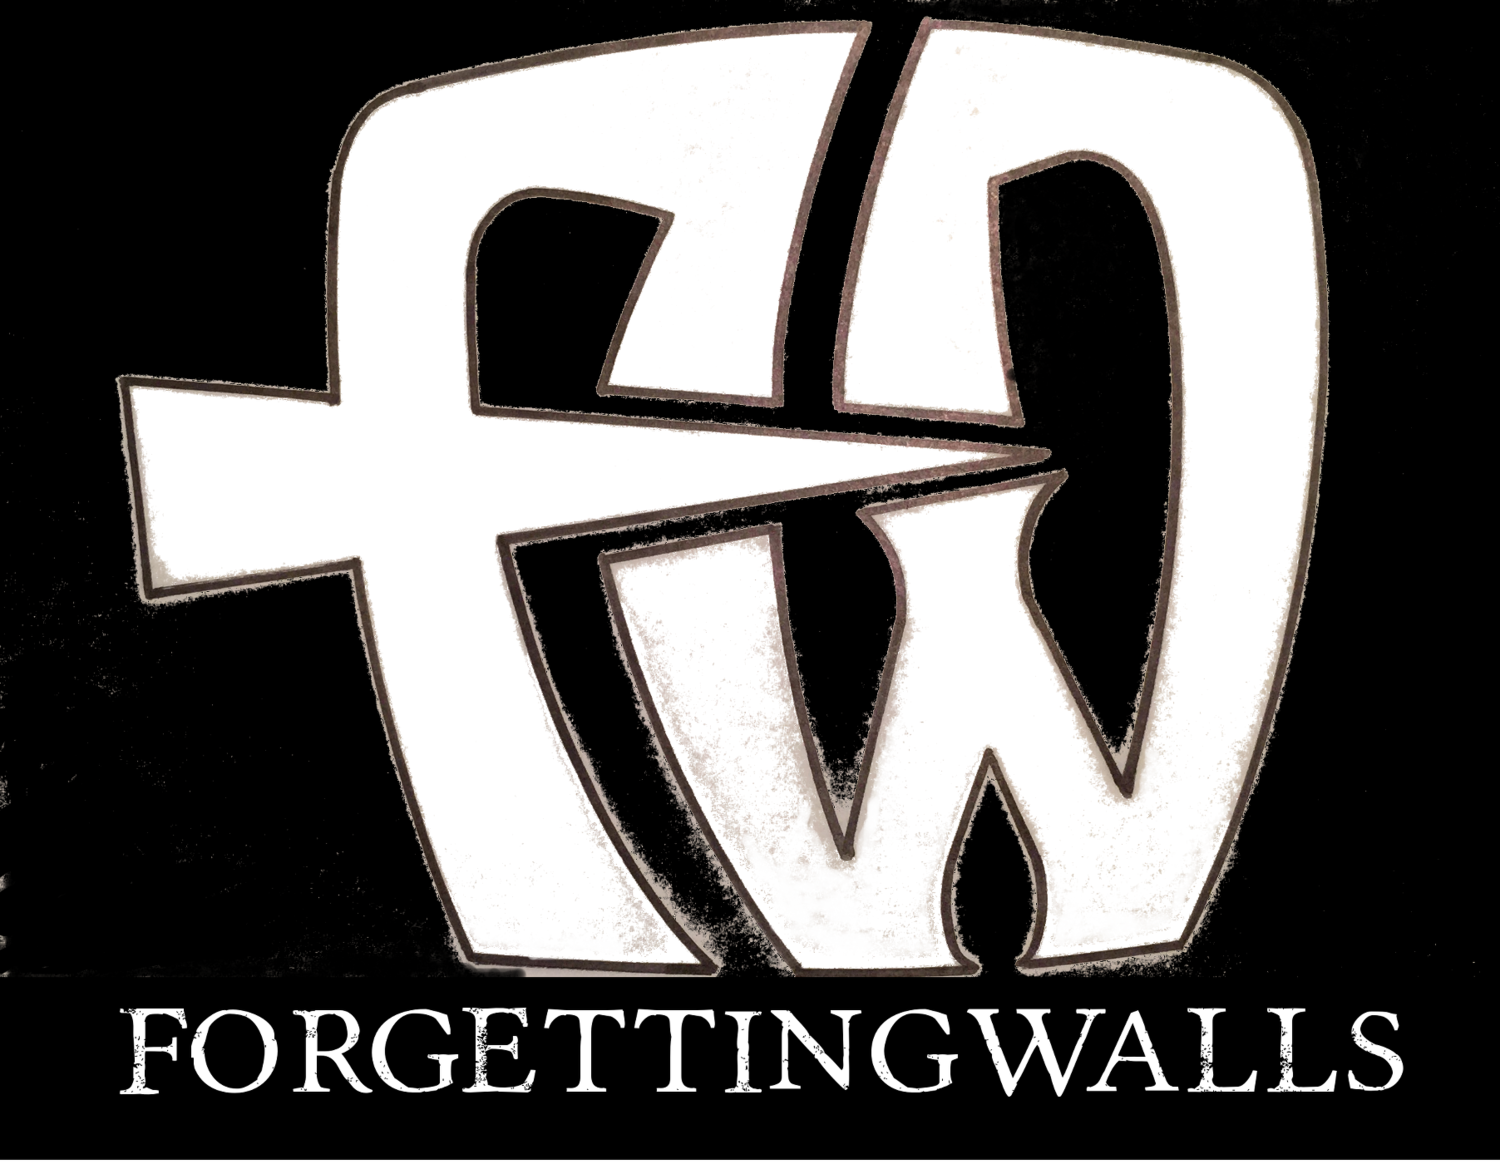 forgettingwalls - Christian Halloween Stories